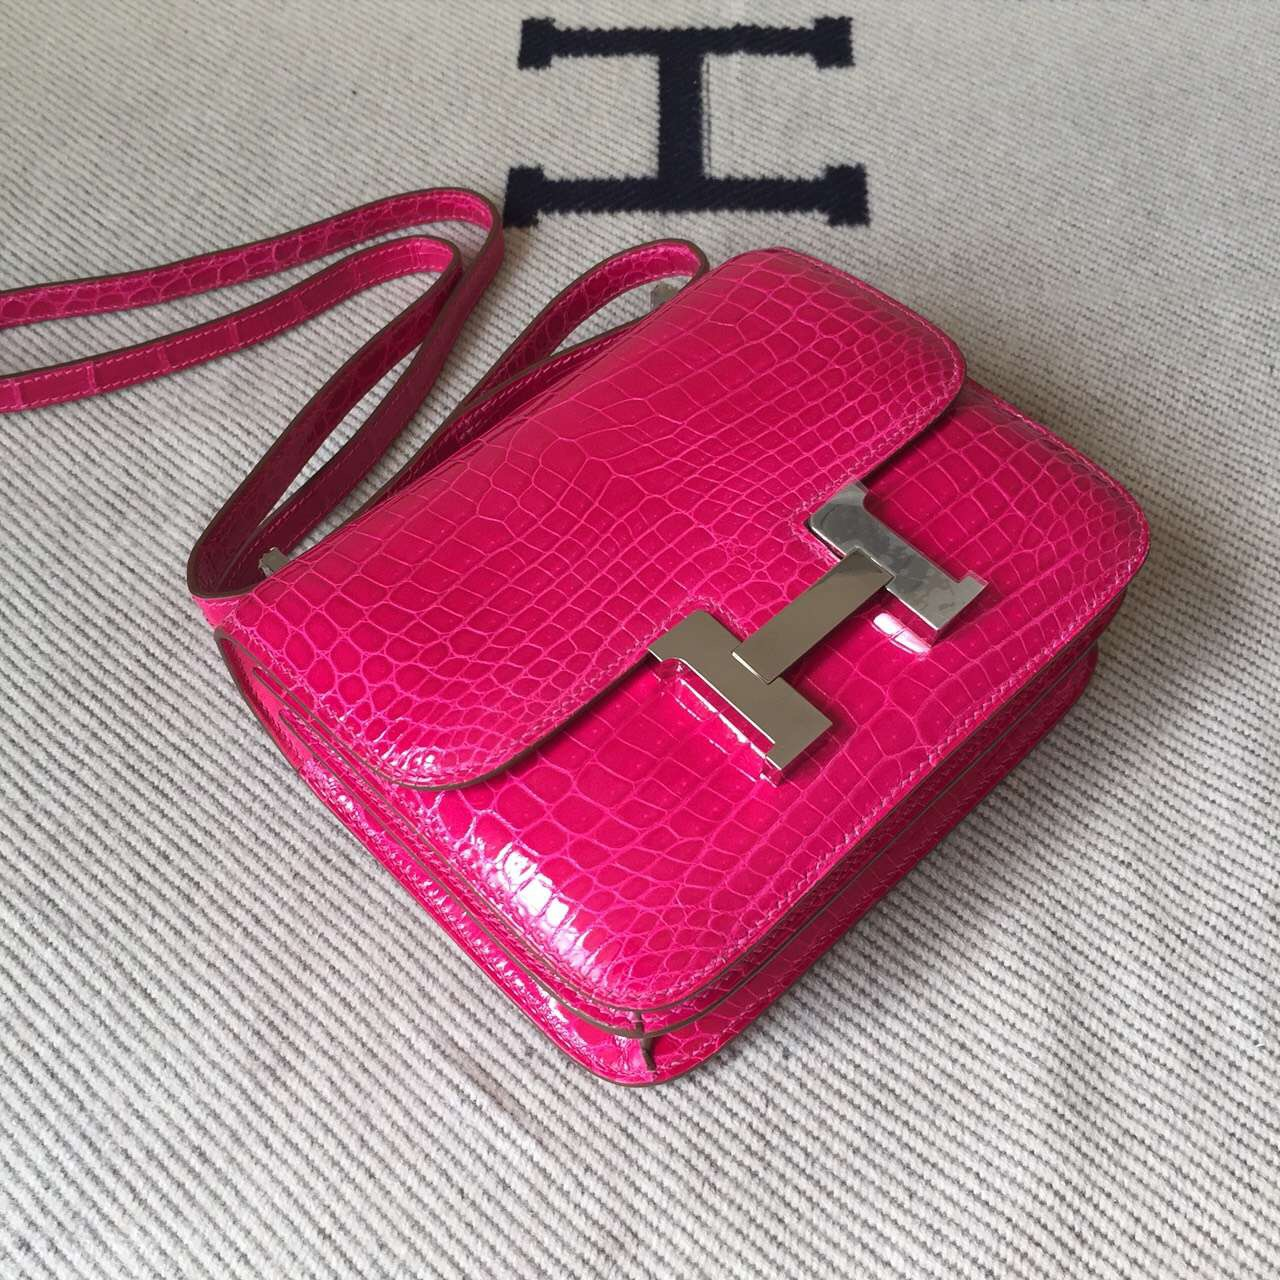 Sale Hermes J5 Rose Scheherazade Crocodile Leather Constance Bag 19cm